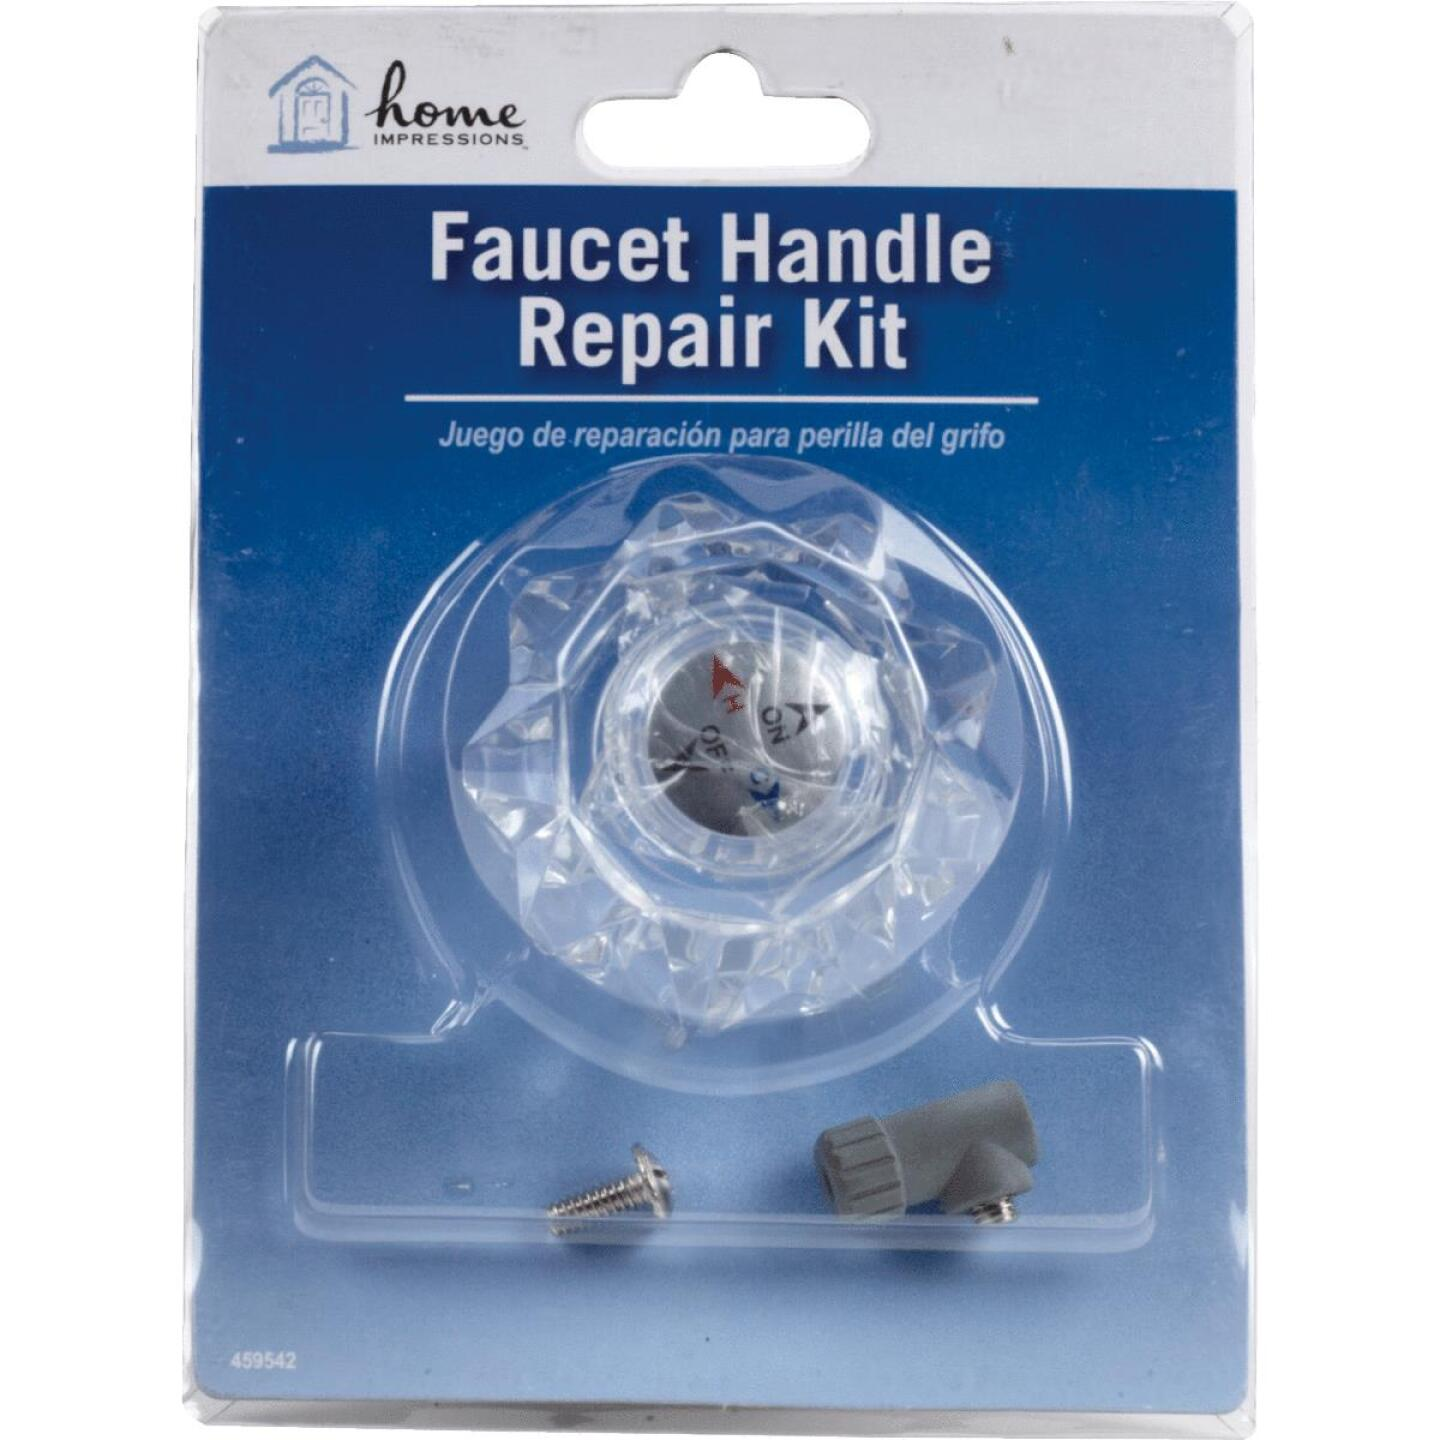 Home Impressions Acrylic Faucet Handle Repair Kit Image 2